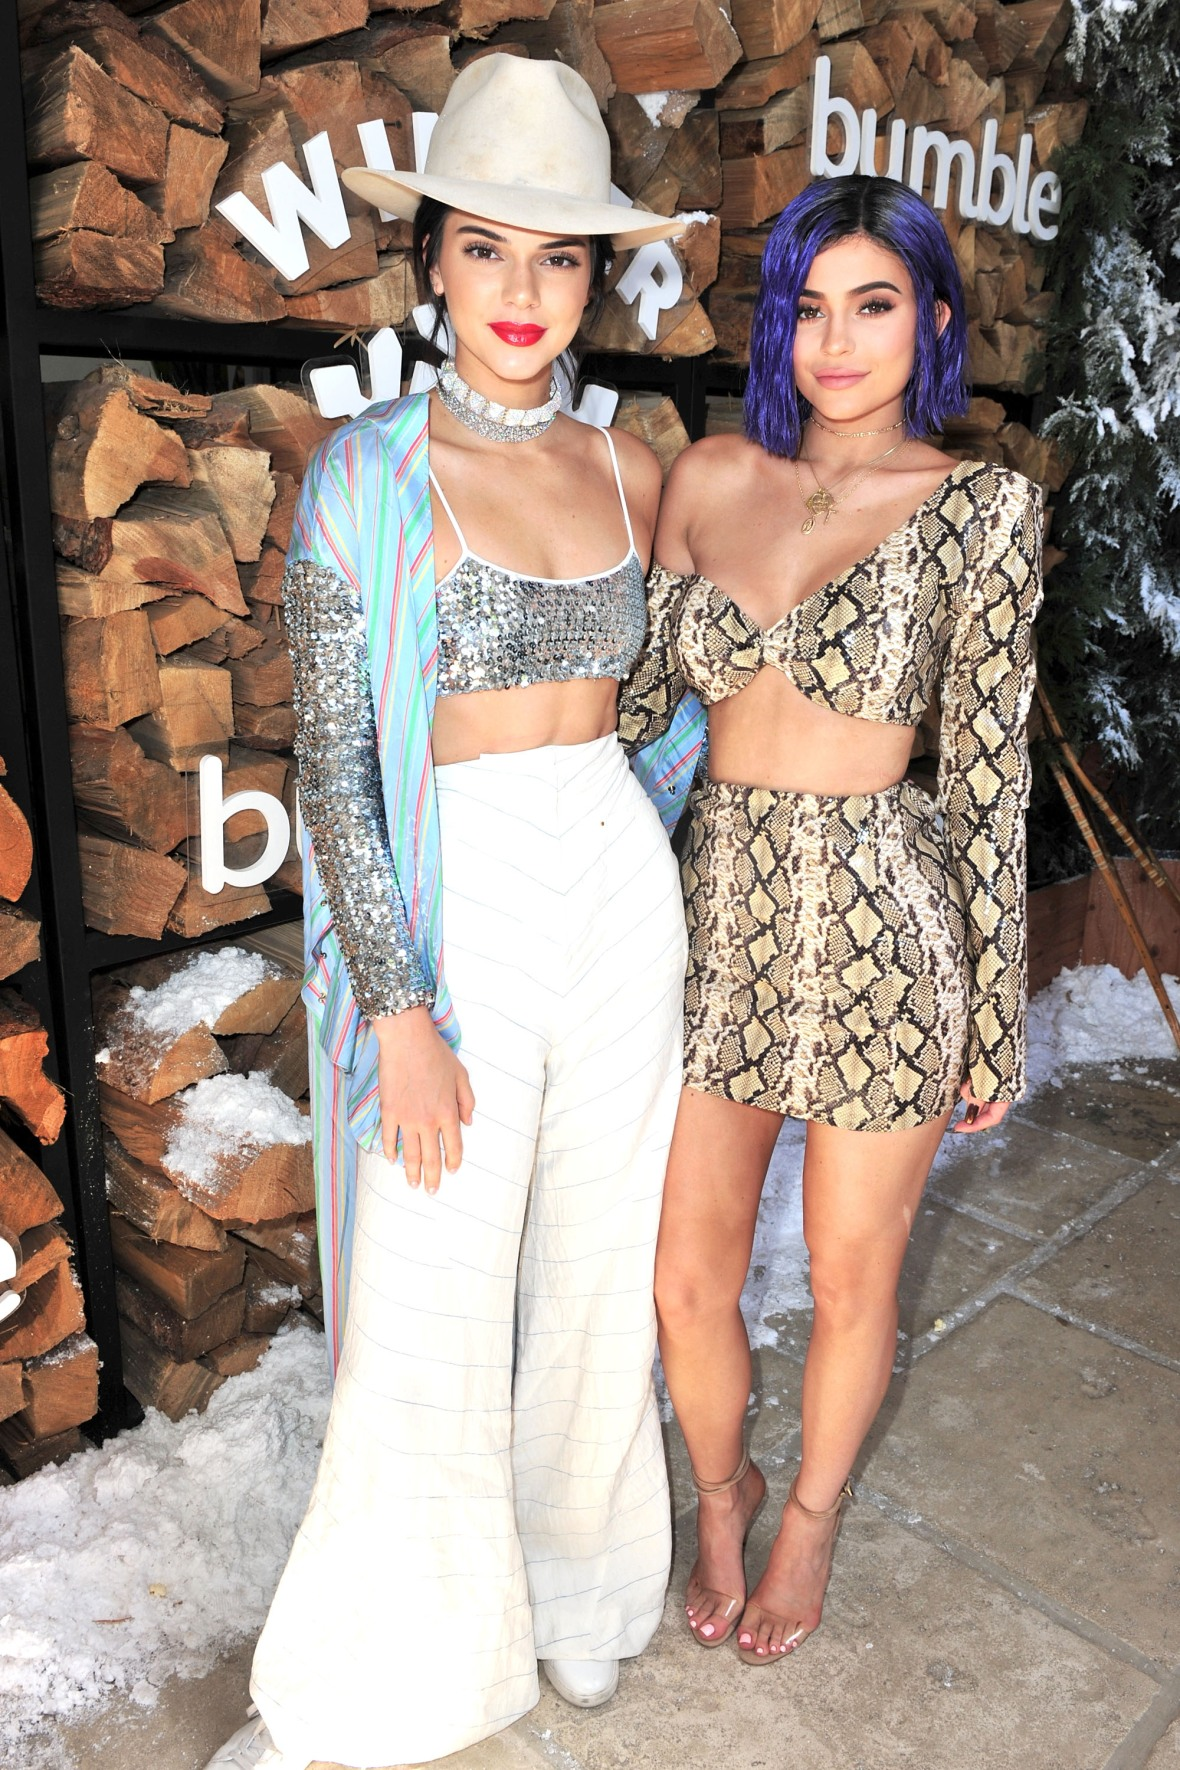 kendall and kylie jenner - getty